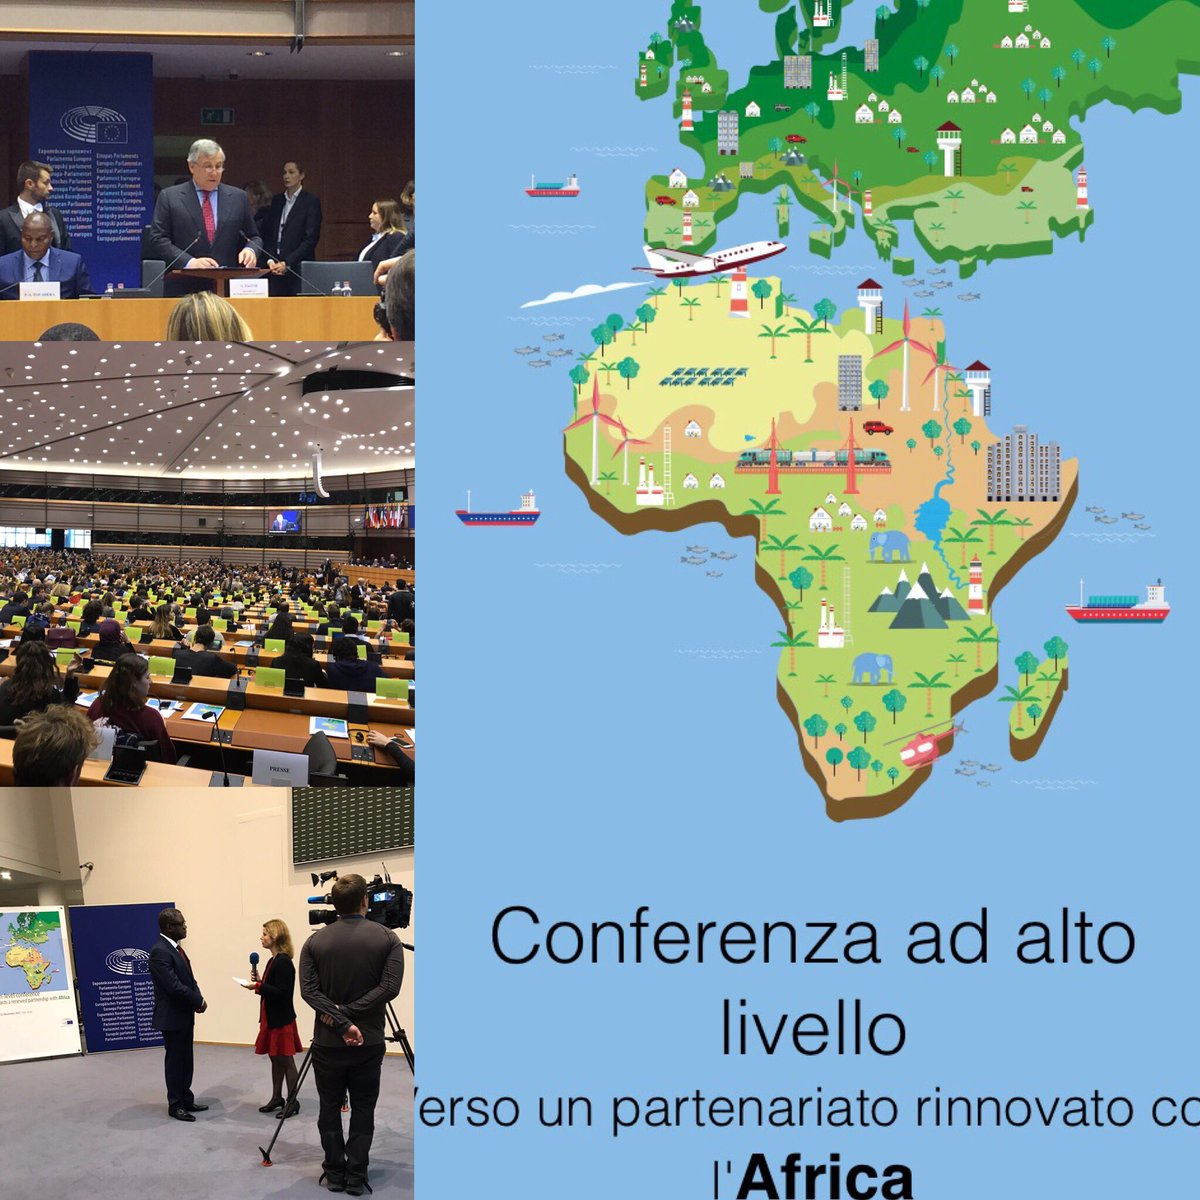 #PartnershipAfricaEU